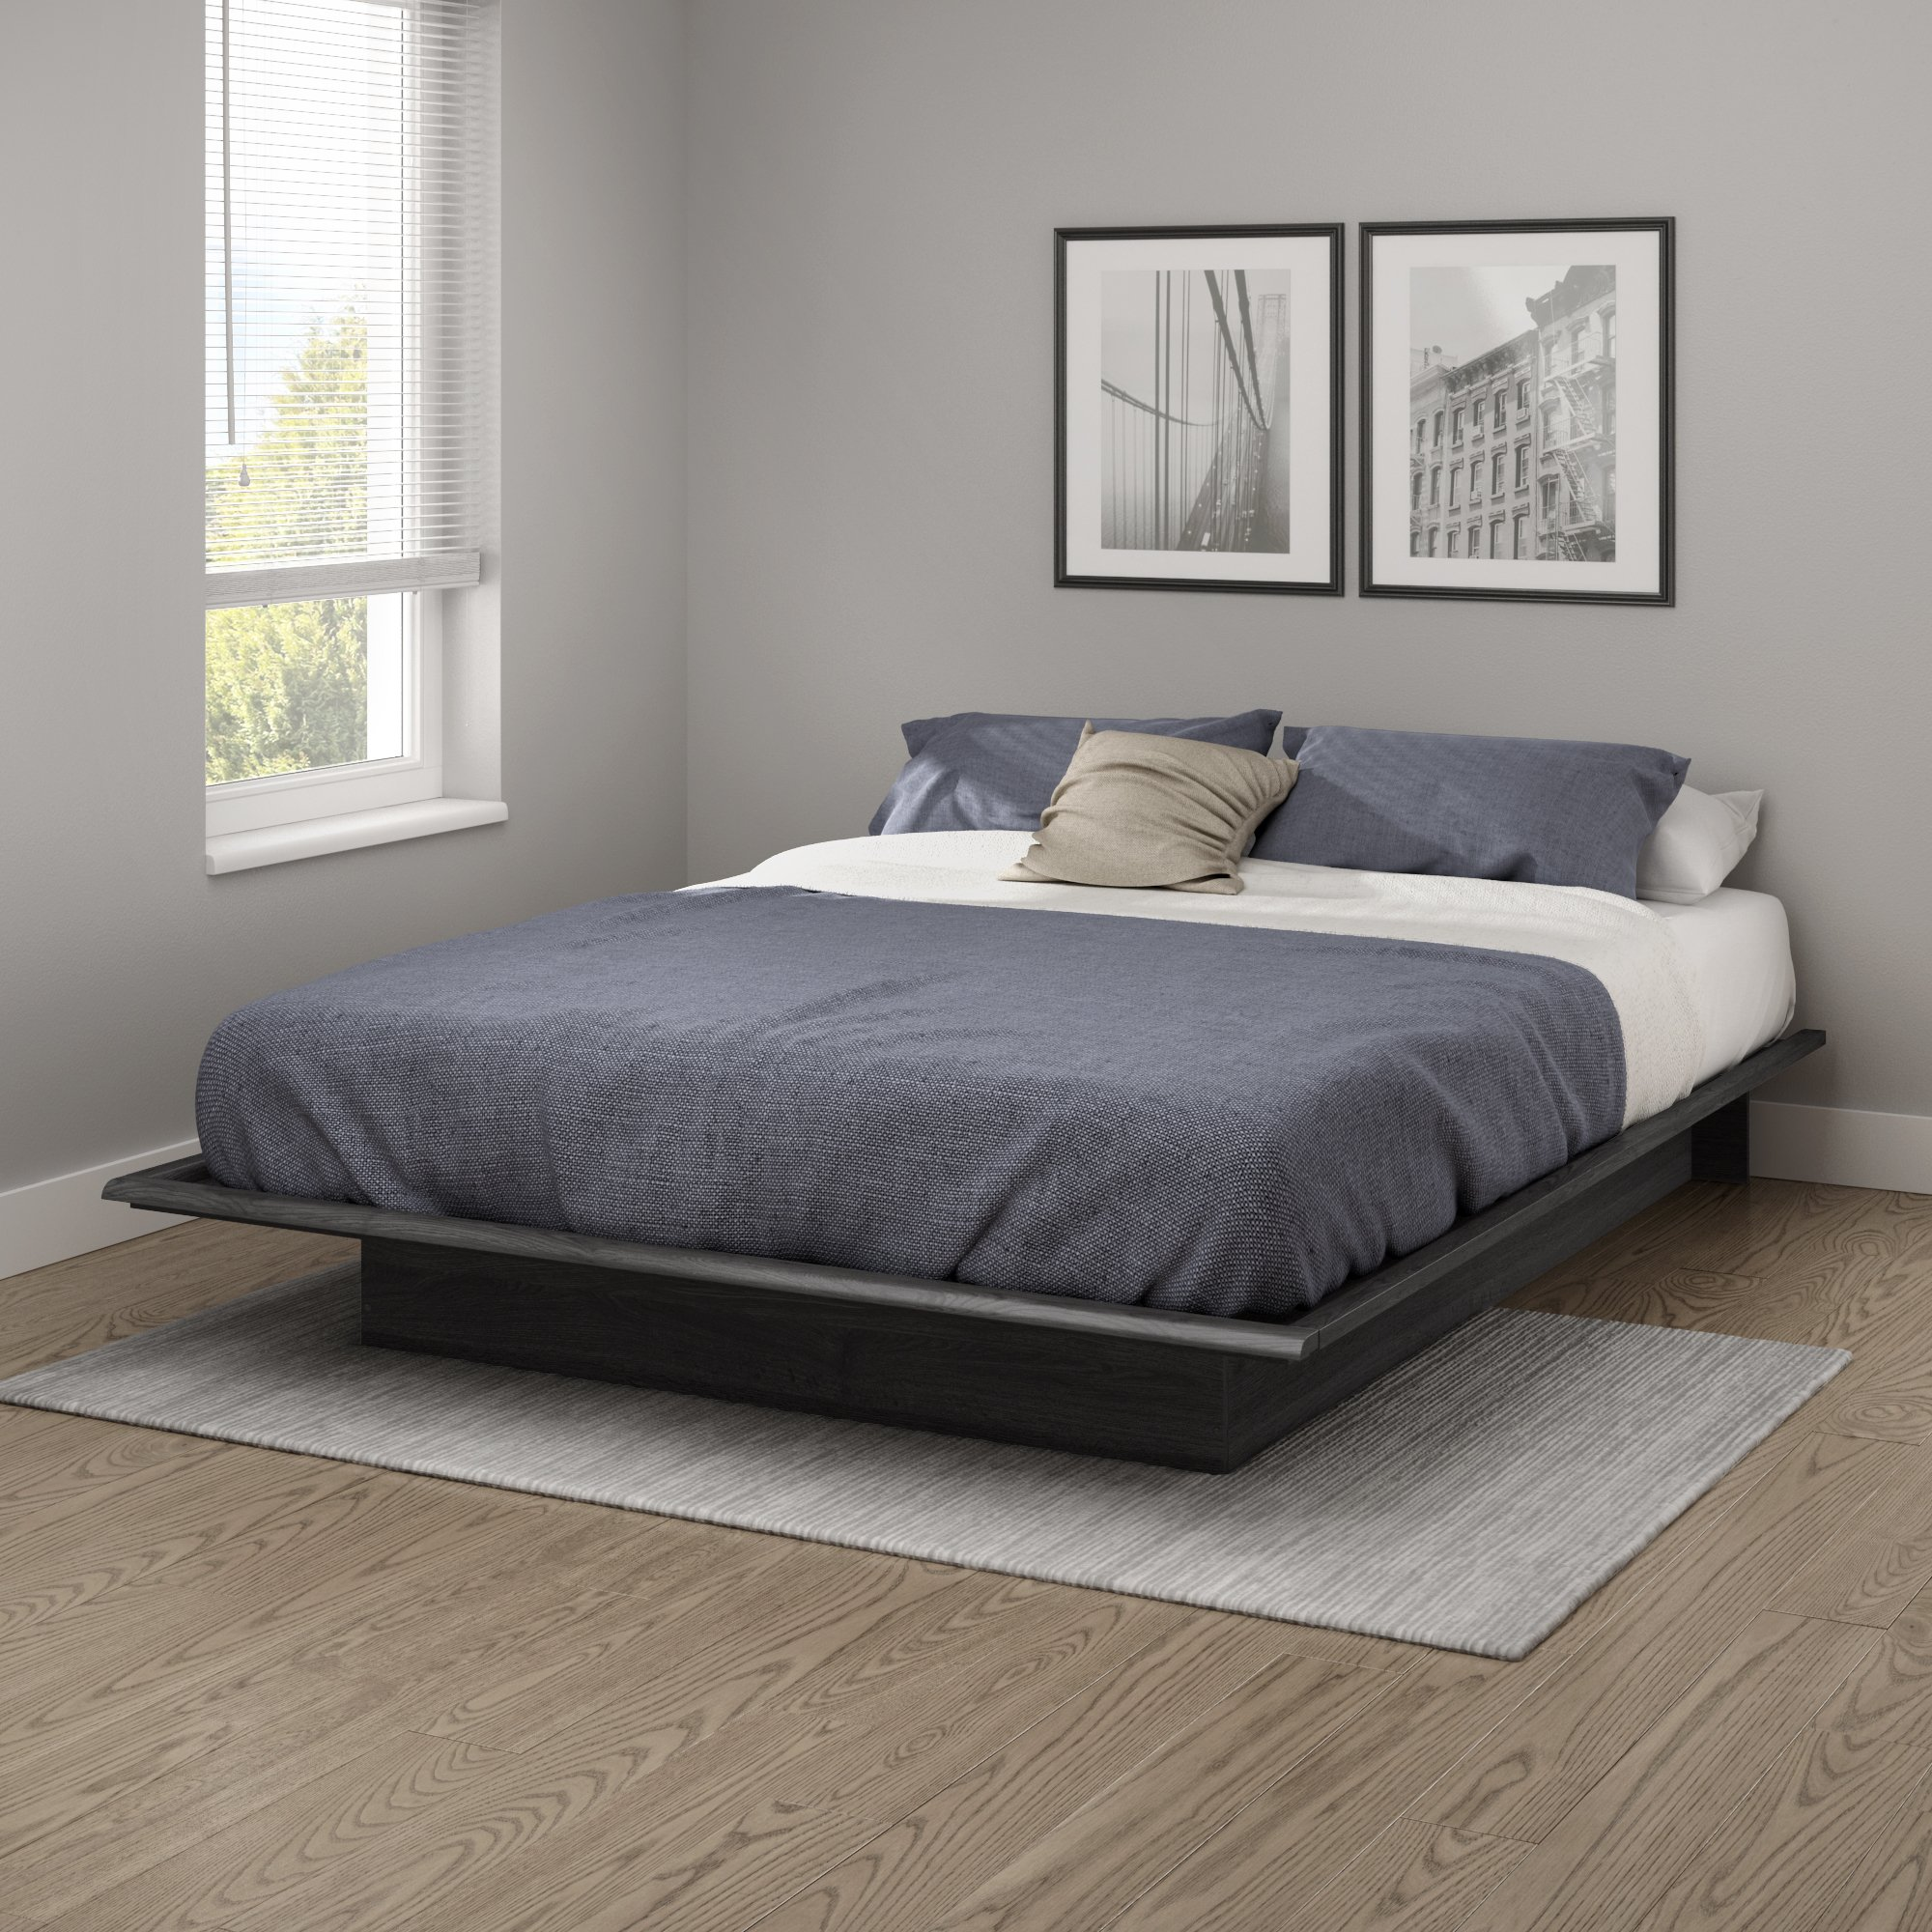 South Shore 10440 Step One Queen Platform Bed (60''), Gray Oak, 60'', by South Shore